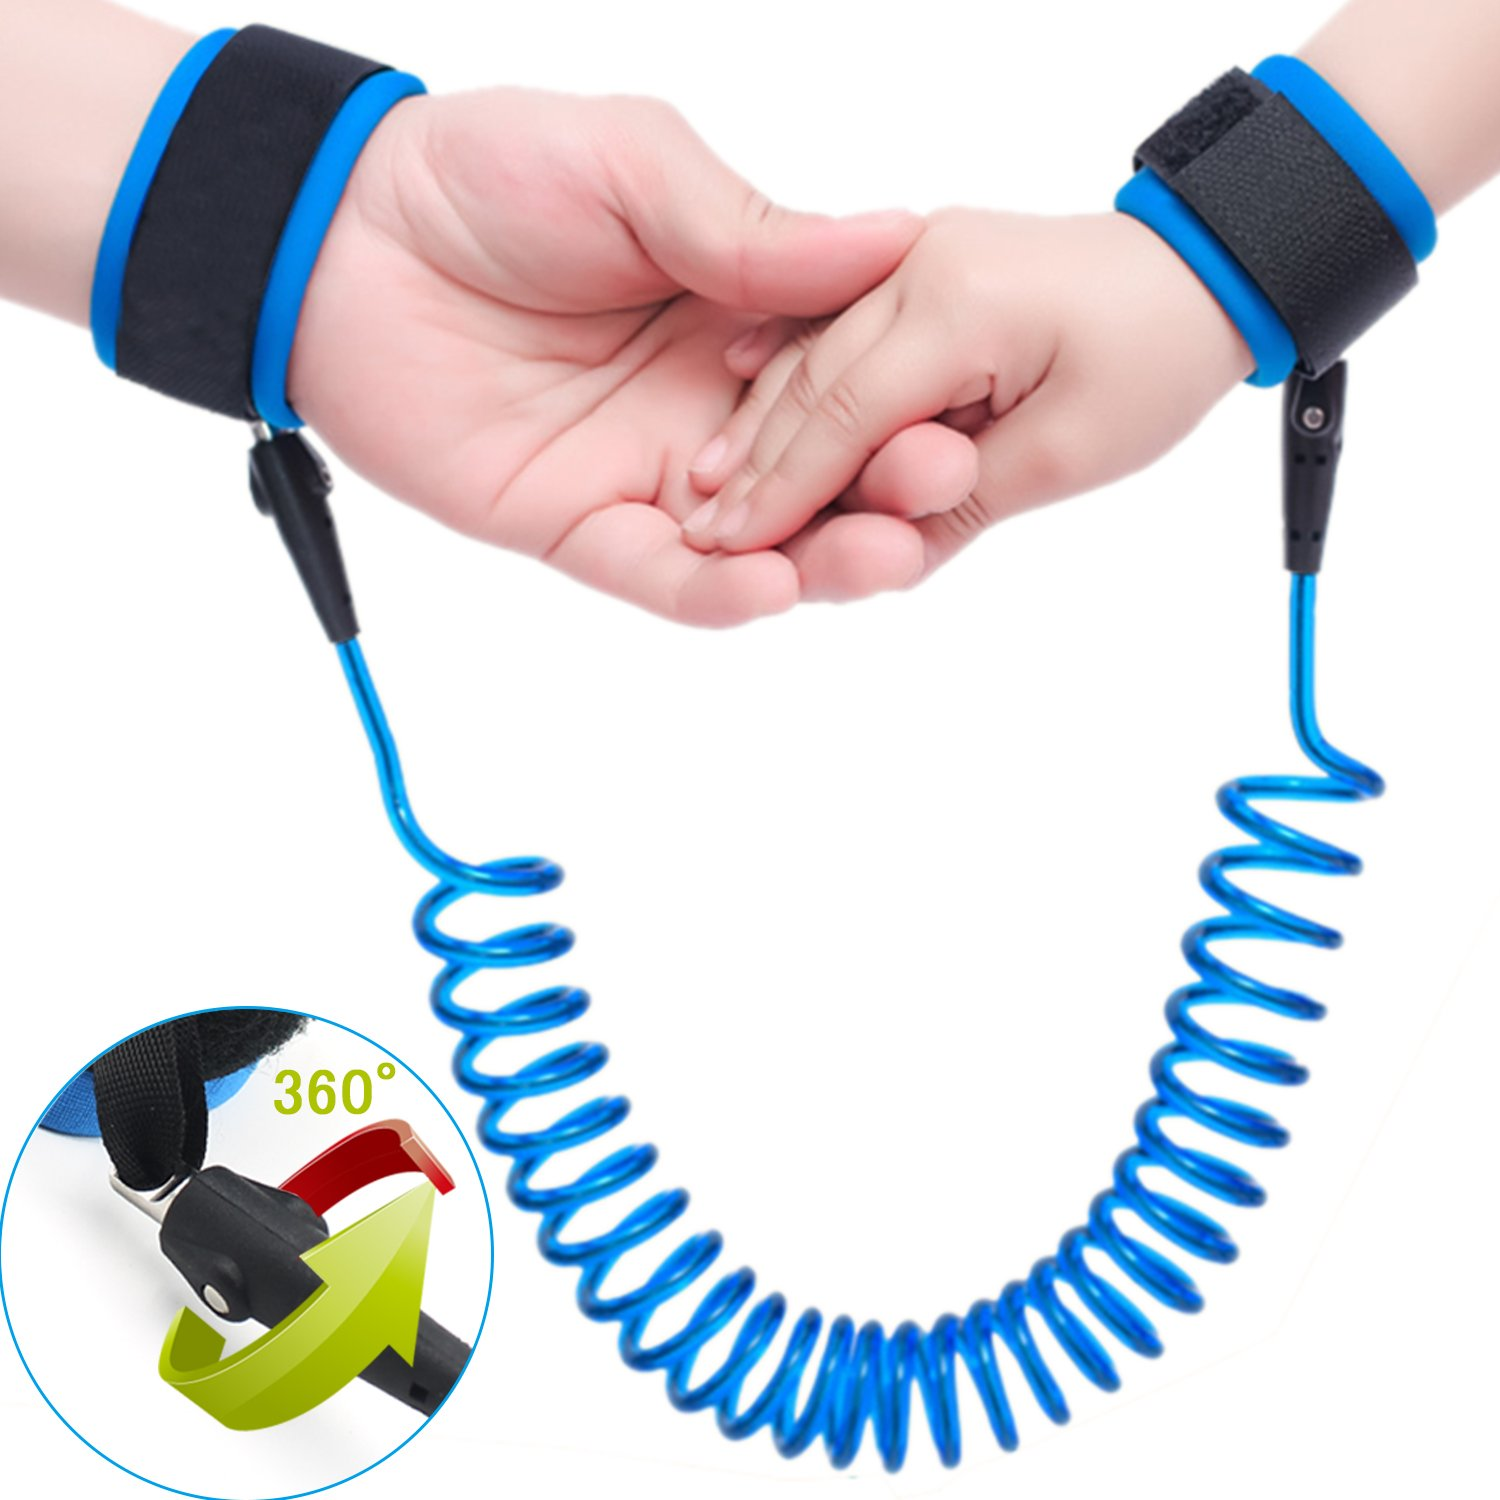 Topsky Anti Lost Wrist Link safety Velcro strap Leash Walking Hand Belt for Toddlers, Kids and Babies (1.5m ) (blue)